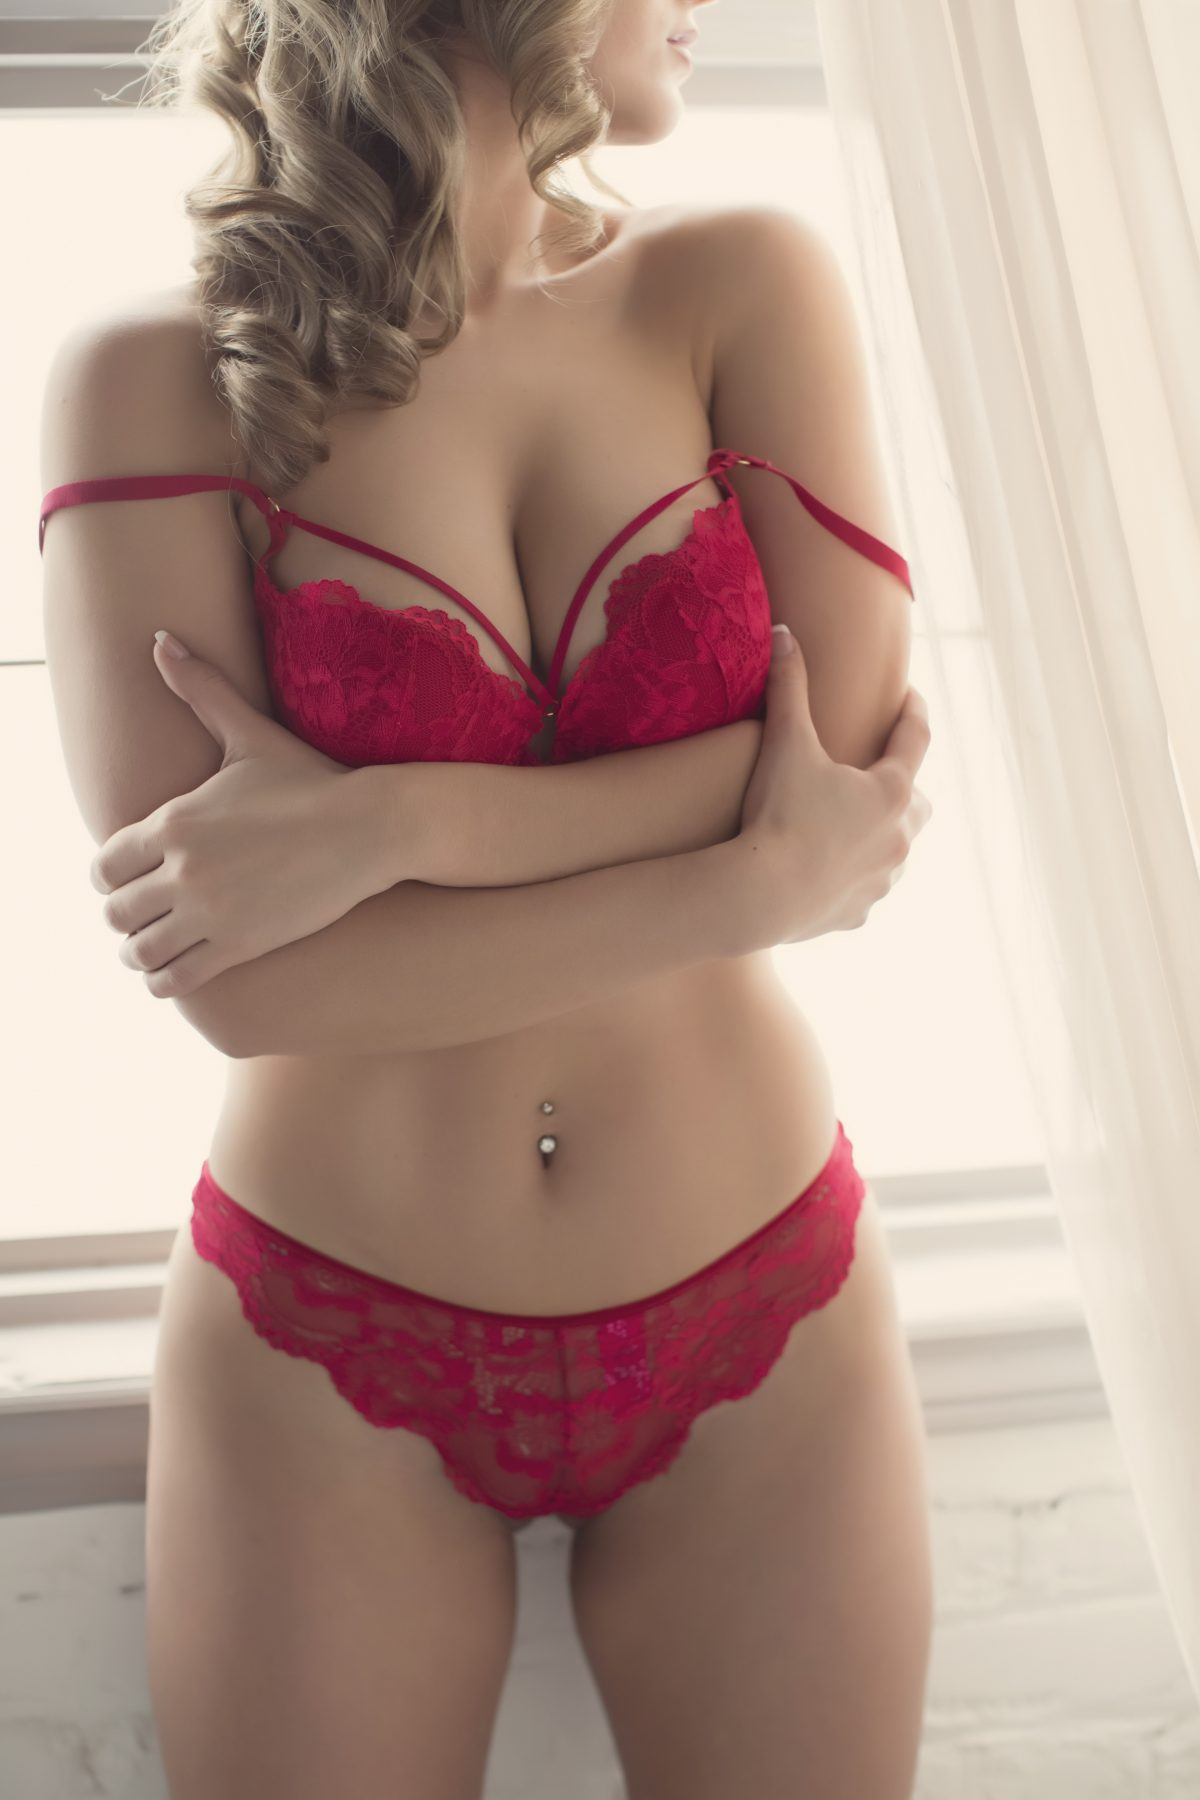 Toronto escorts companion upscale Cameron Interests Non-smoking Age Young Figure Slender Petite Tall Breasts Natural Hair Blonde Ethnicity European Tattoos Small Arrival Returning